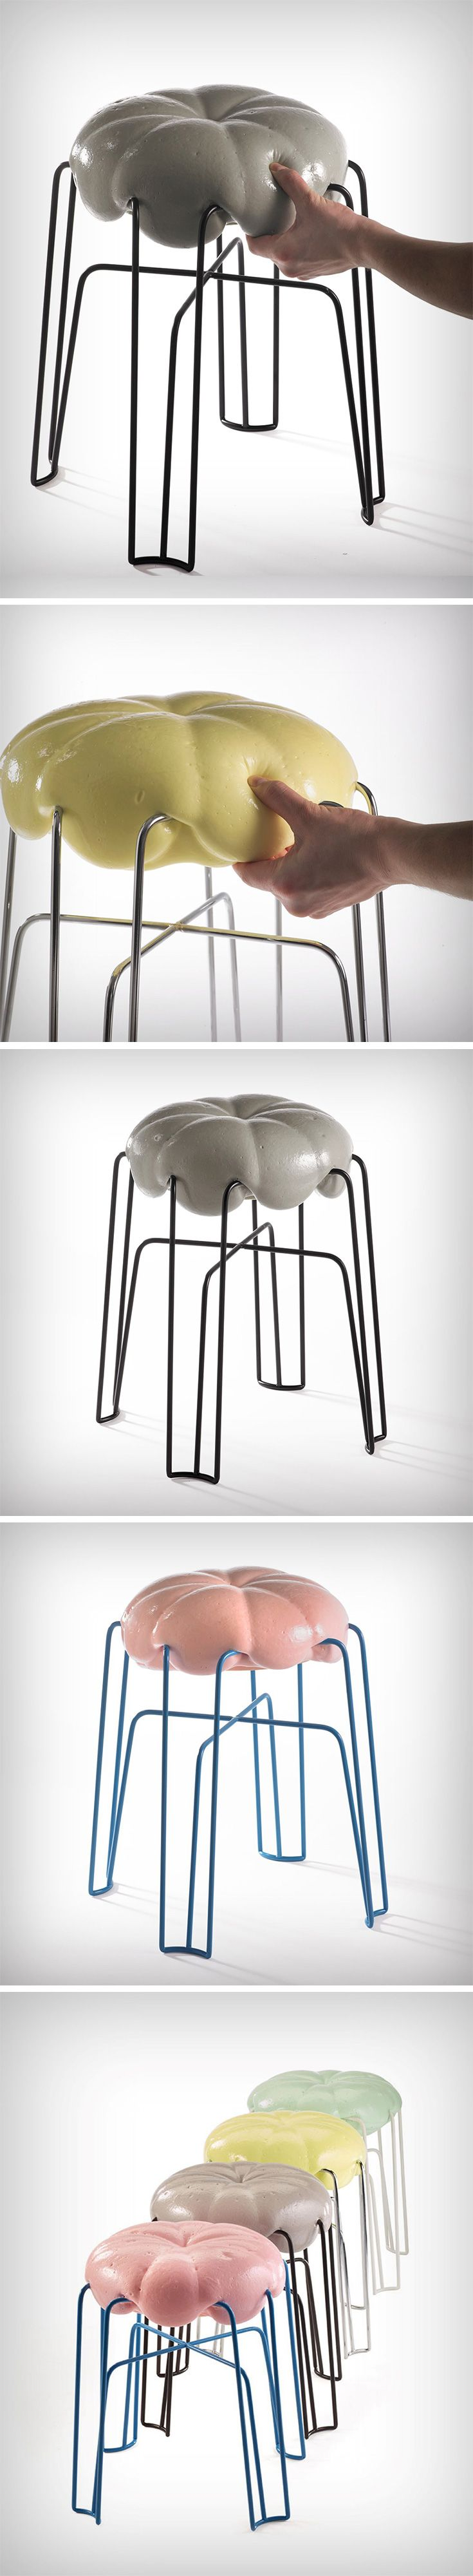 The Marshmallow Stool comprises a single metal pipe base and a foam seat. The eye instantly goes to the way the foam seat looks to be melting over the metal base, giving it the appearance of being incredibly soft. However, the most aesthetic element of the stool (the seat) is probably the most un-designed.